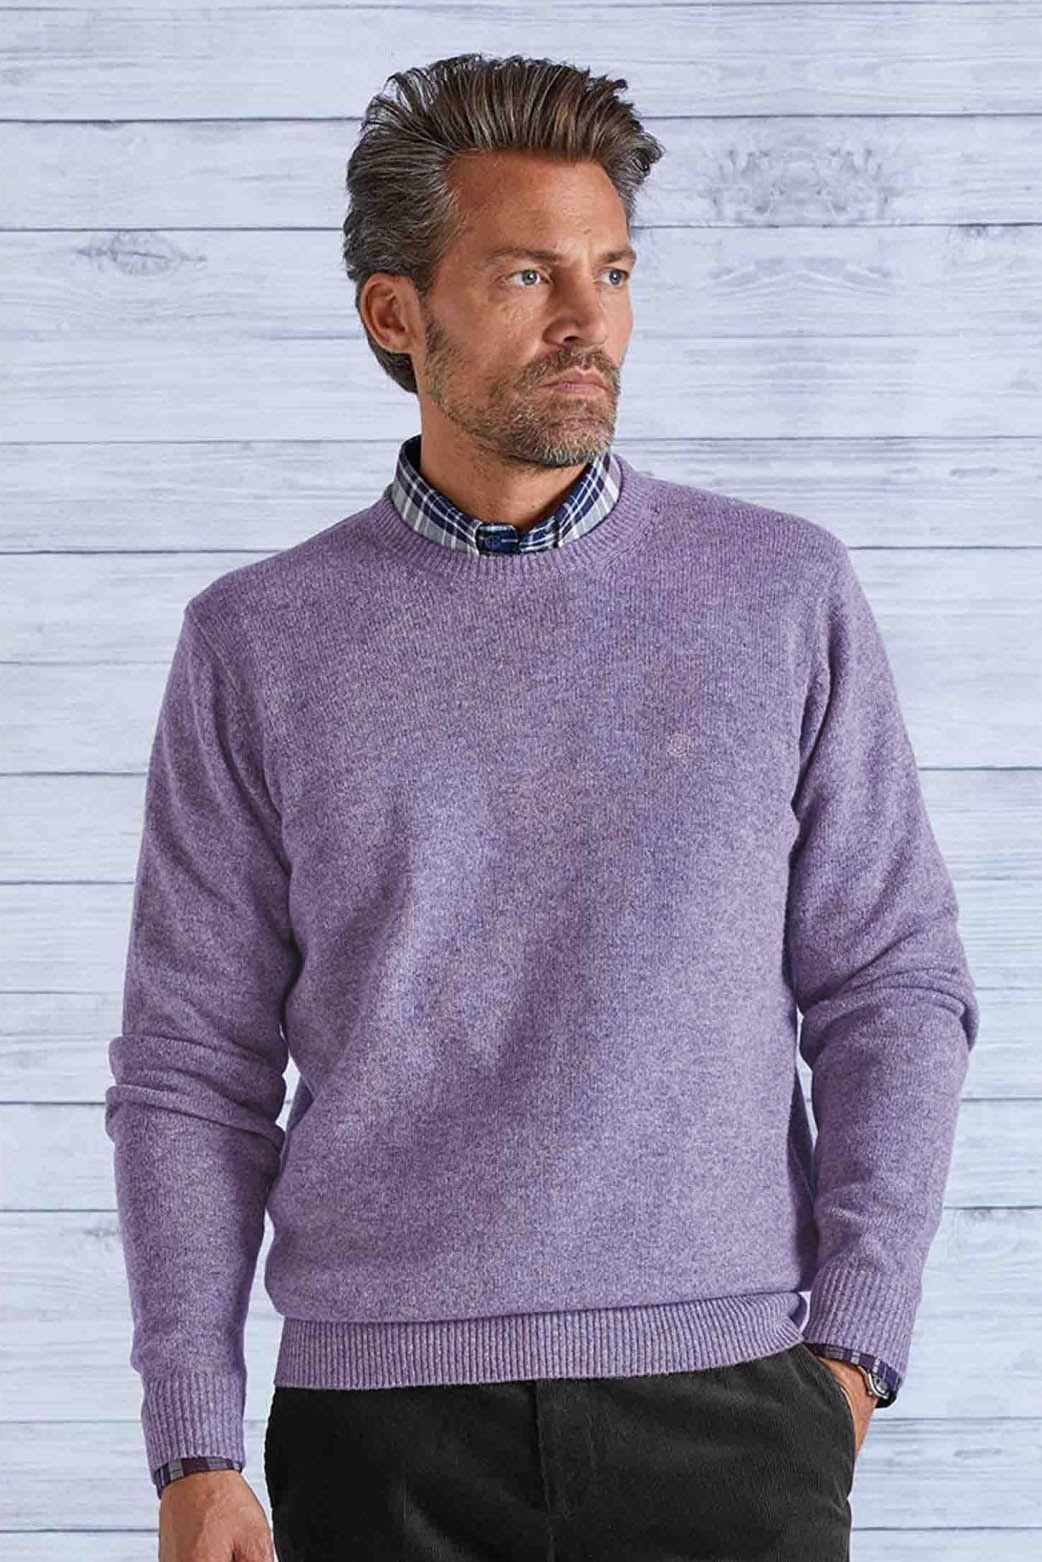 James-Pringle-Wool-Crew-Neck-Mens-Sweater-54-Off thumbnail 3